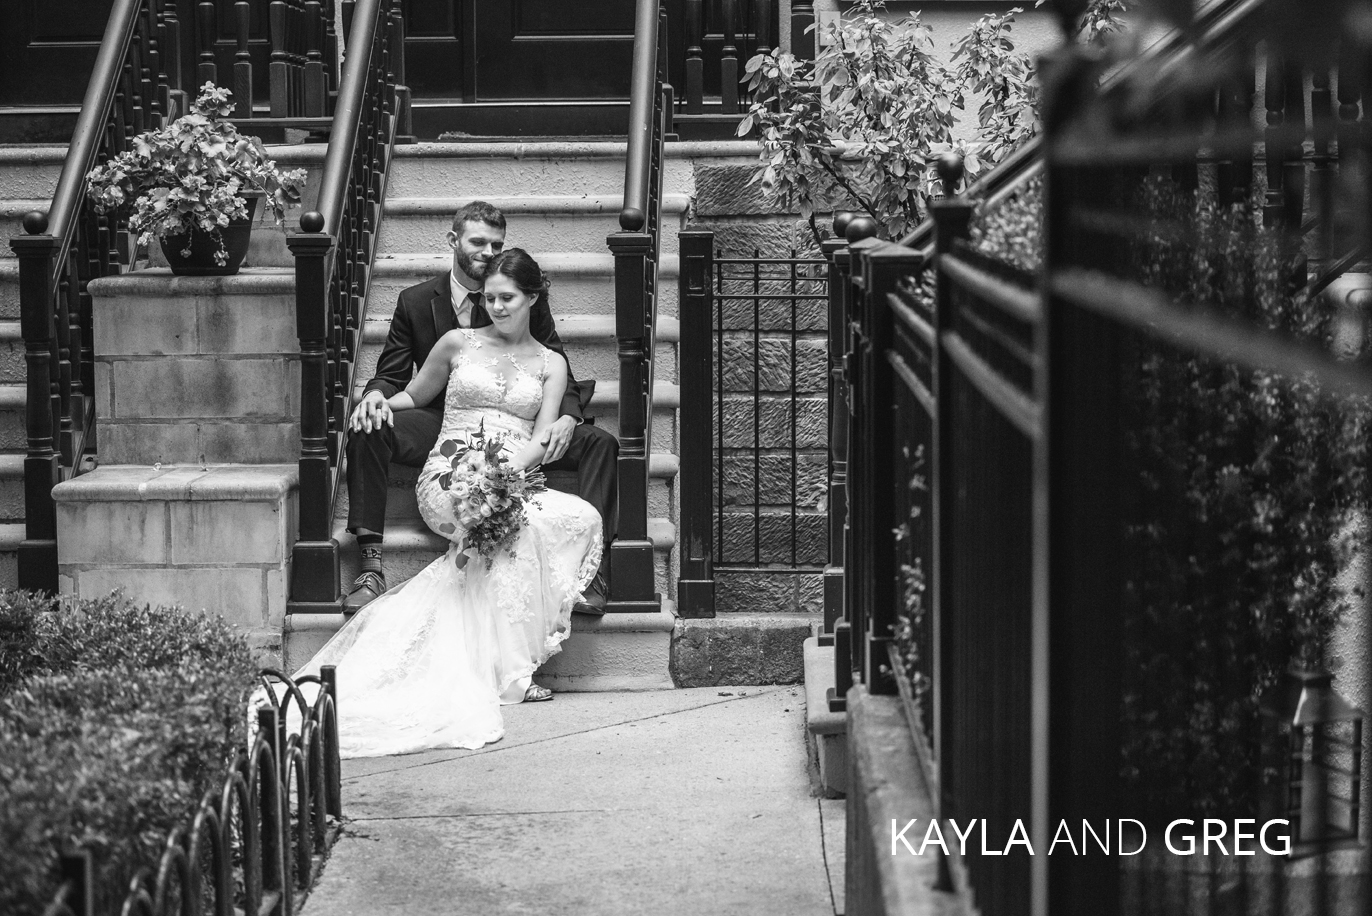 kayla and greg sit on a stoop in downtown columbus